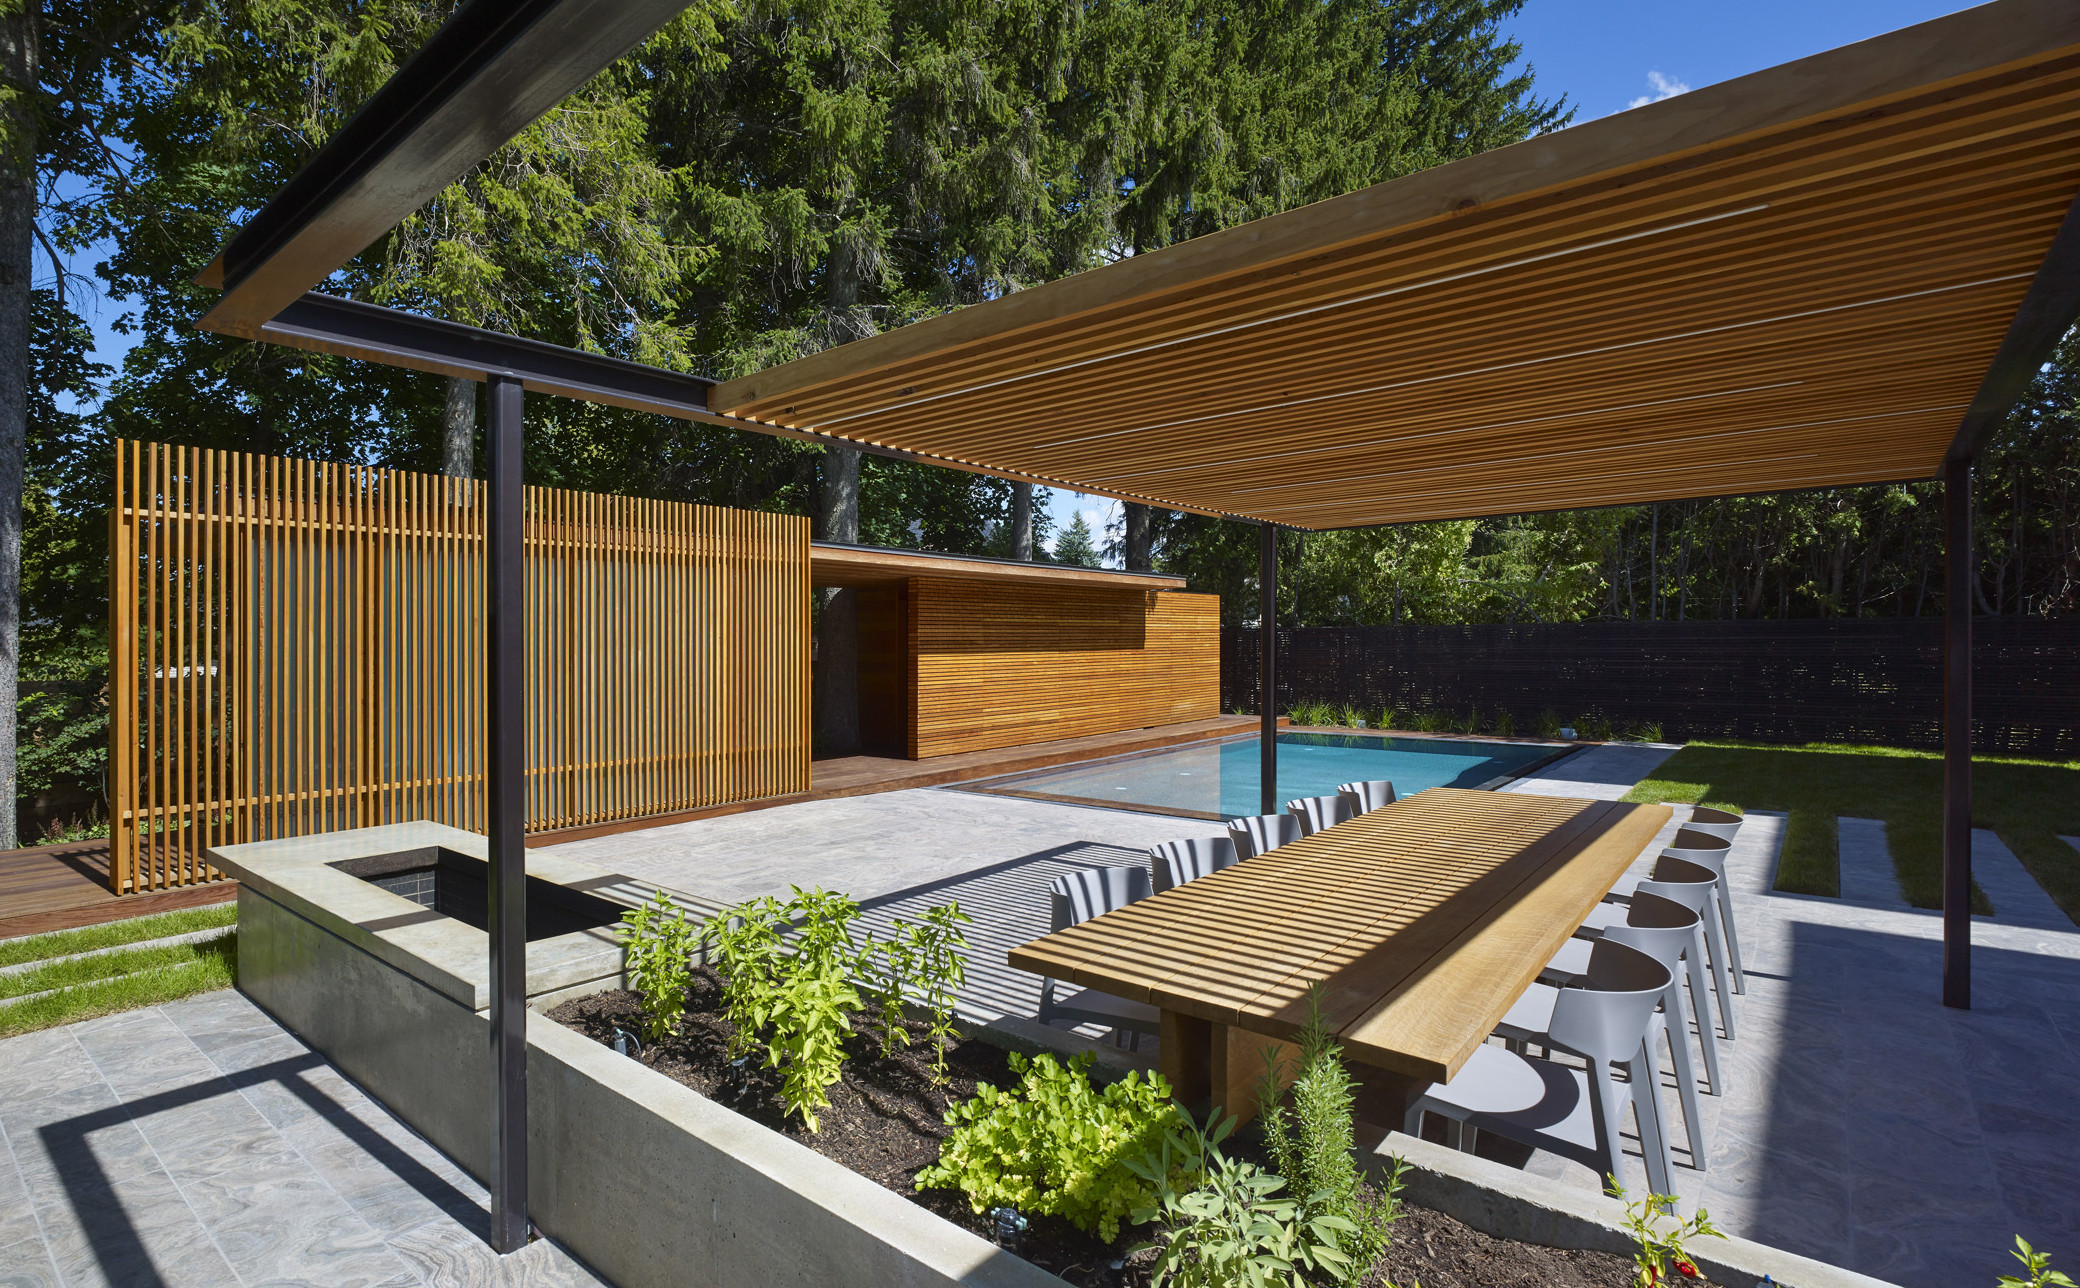 Pavilion-Pool Archives - Modern Design